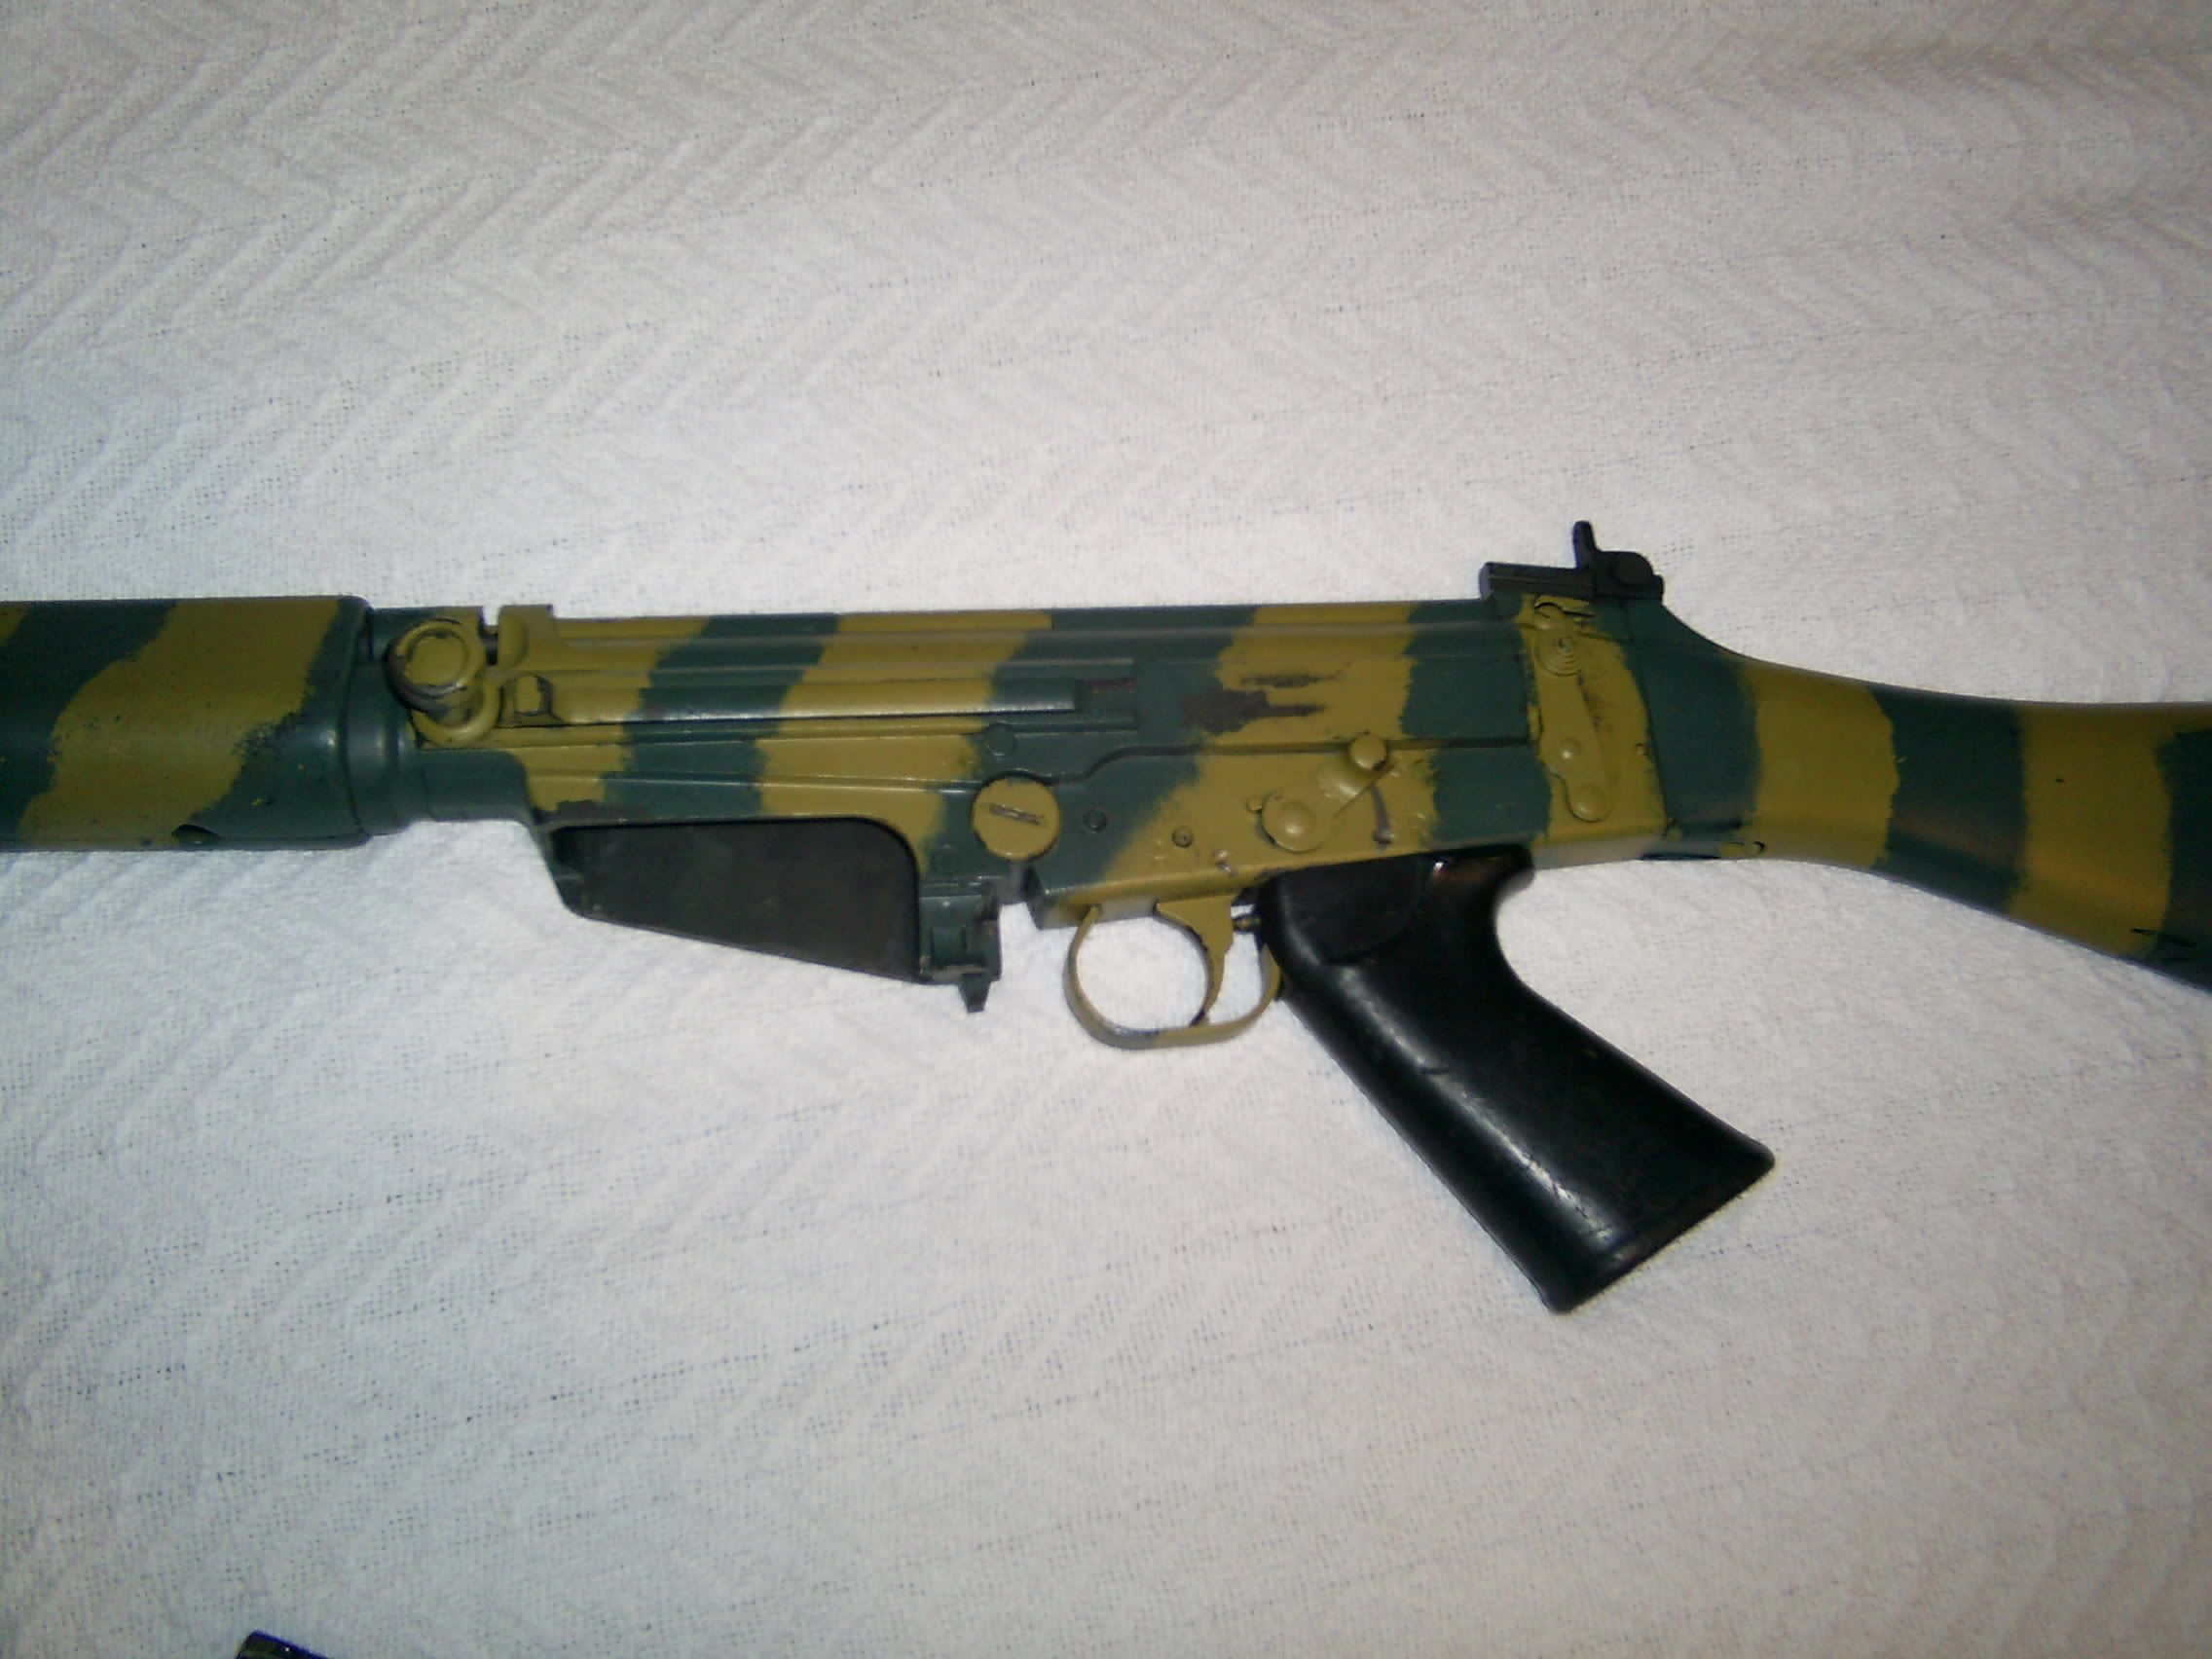 Rhodesian Army Weapons - How the rhodesian army painted their fn fals usually done with a brush